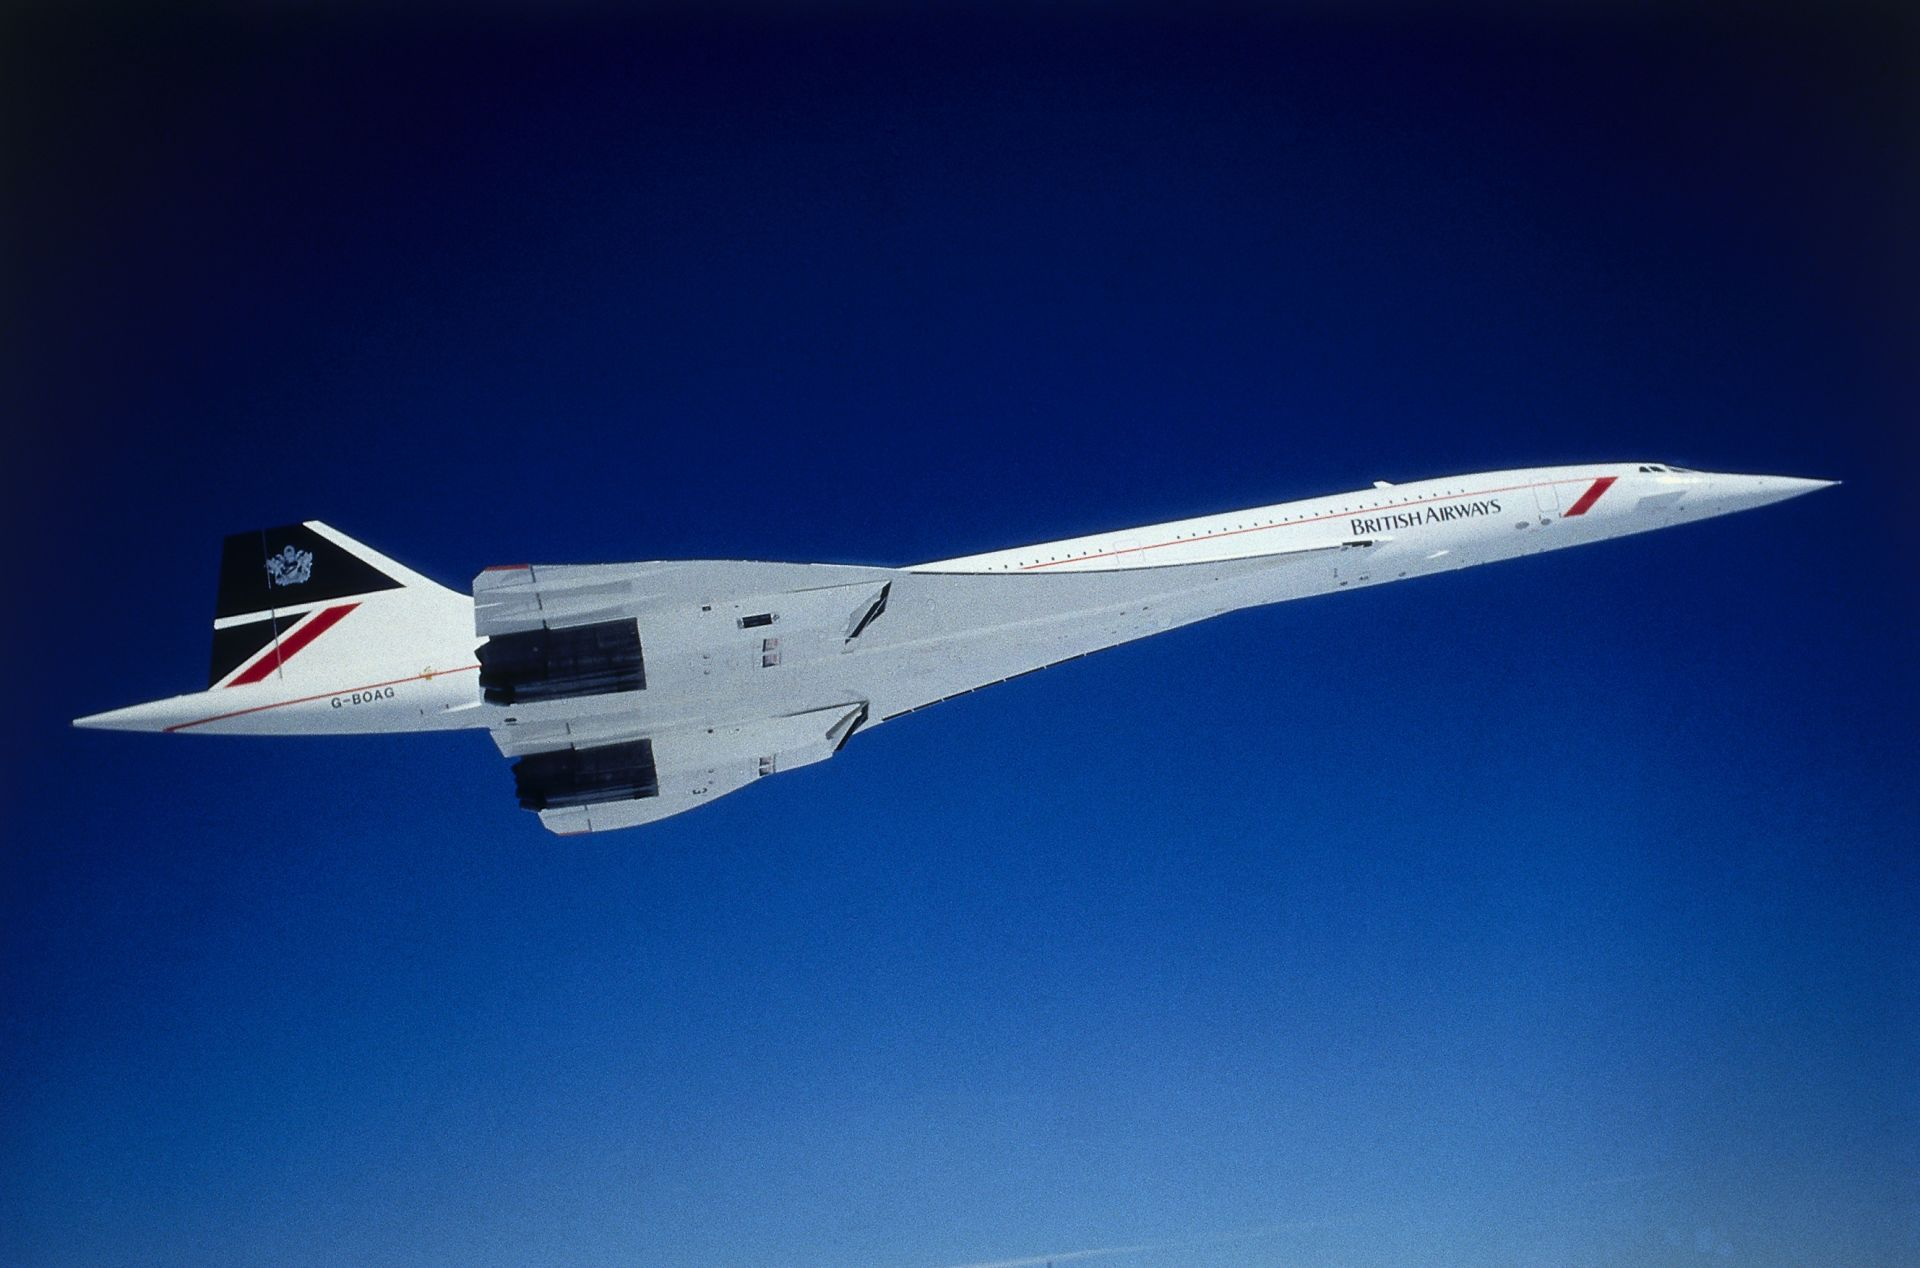 kid airplanes with Concorde on Plane Wings Cliparts likewise 10 Top Rated Tourist Attractions In Ohio likewise Happy Saturday Quotes additionally City Museum further Concorde.